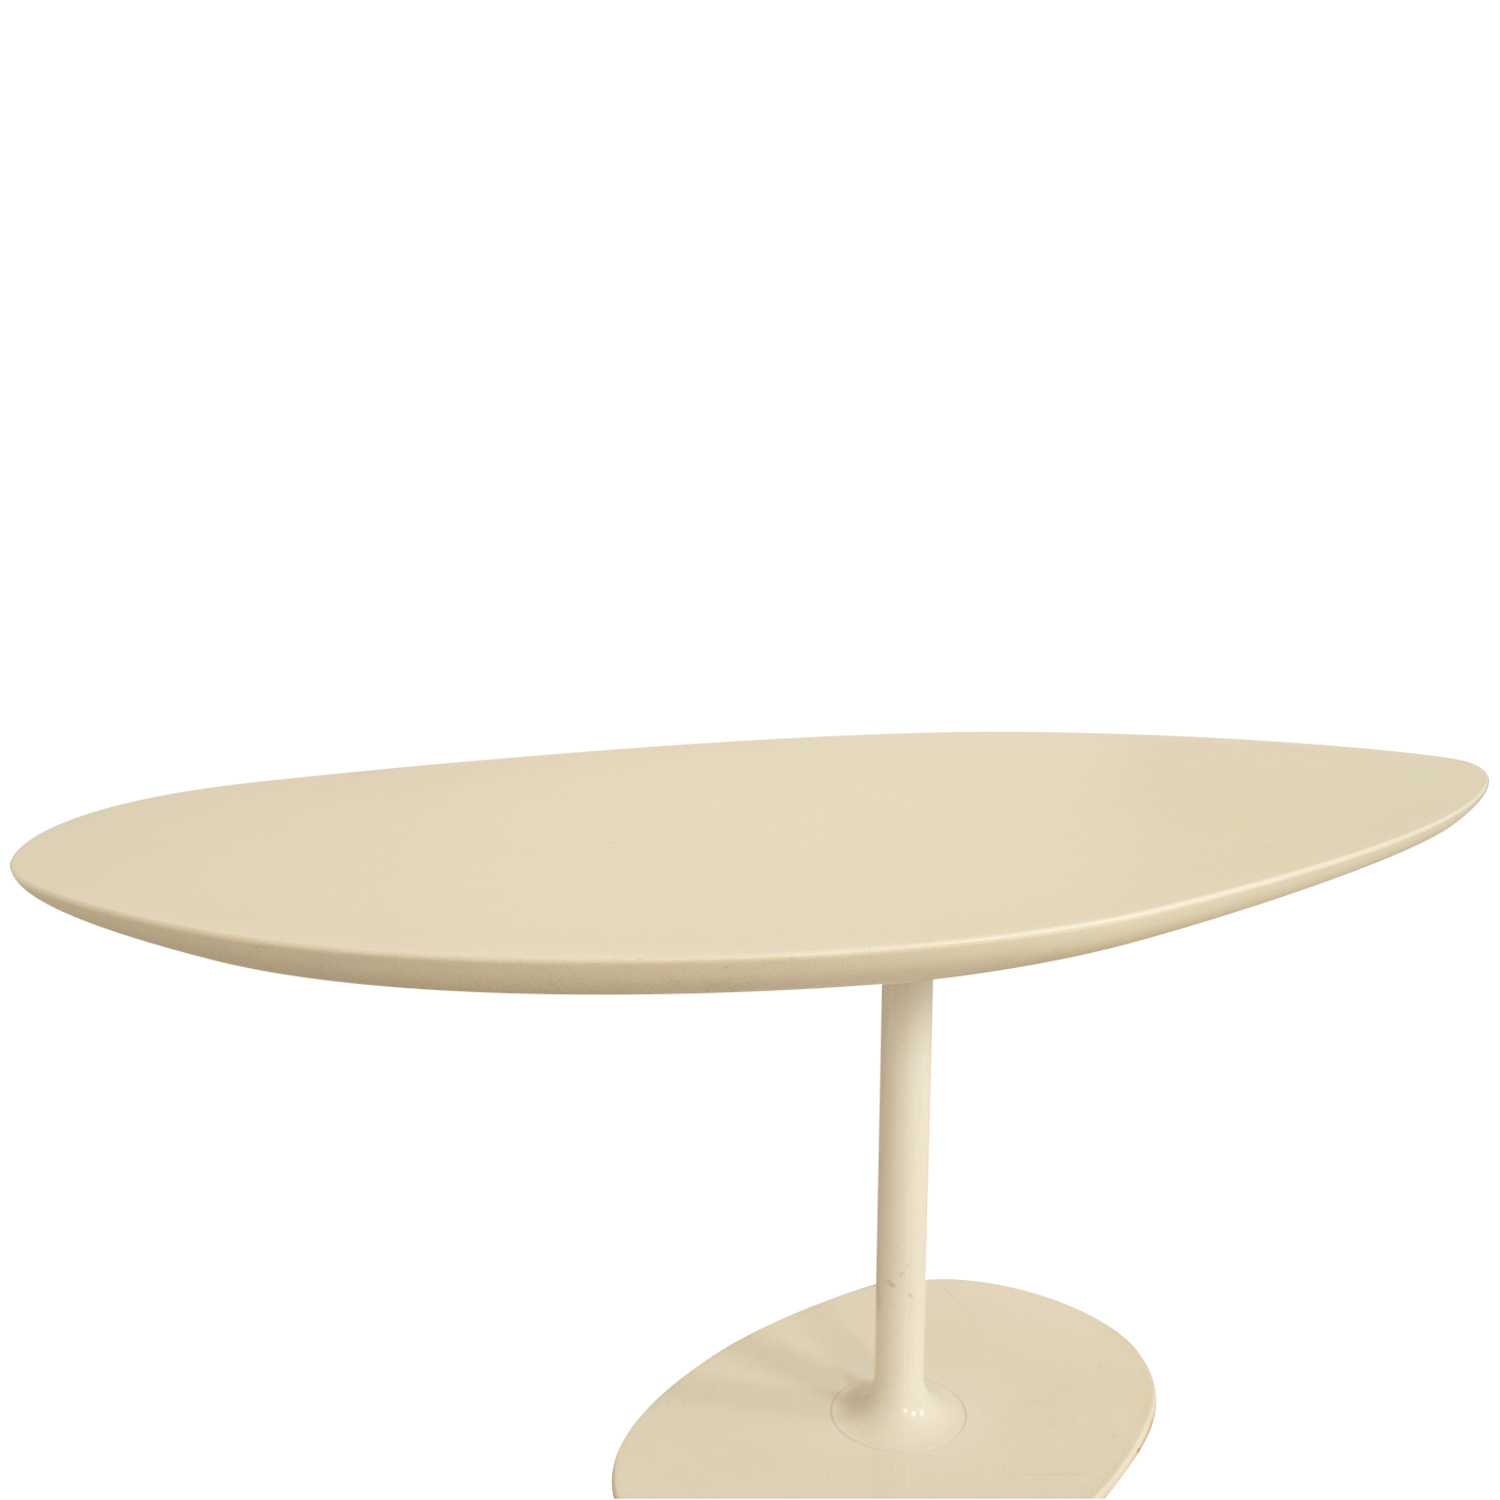 Arper Arper Dizzie Oval Dining Table discount